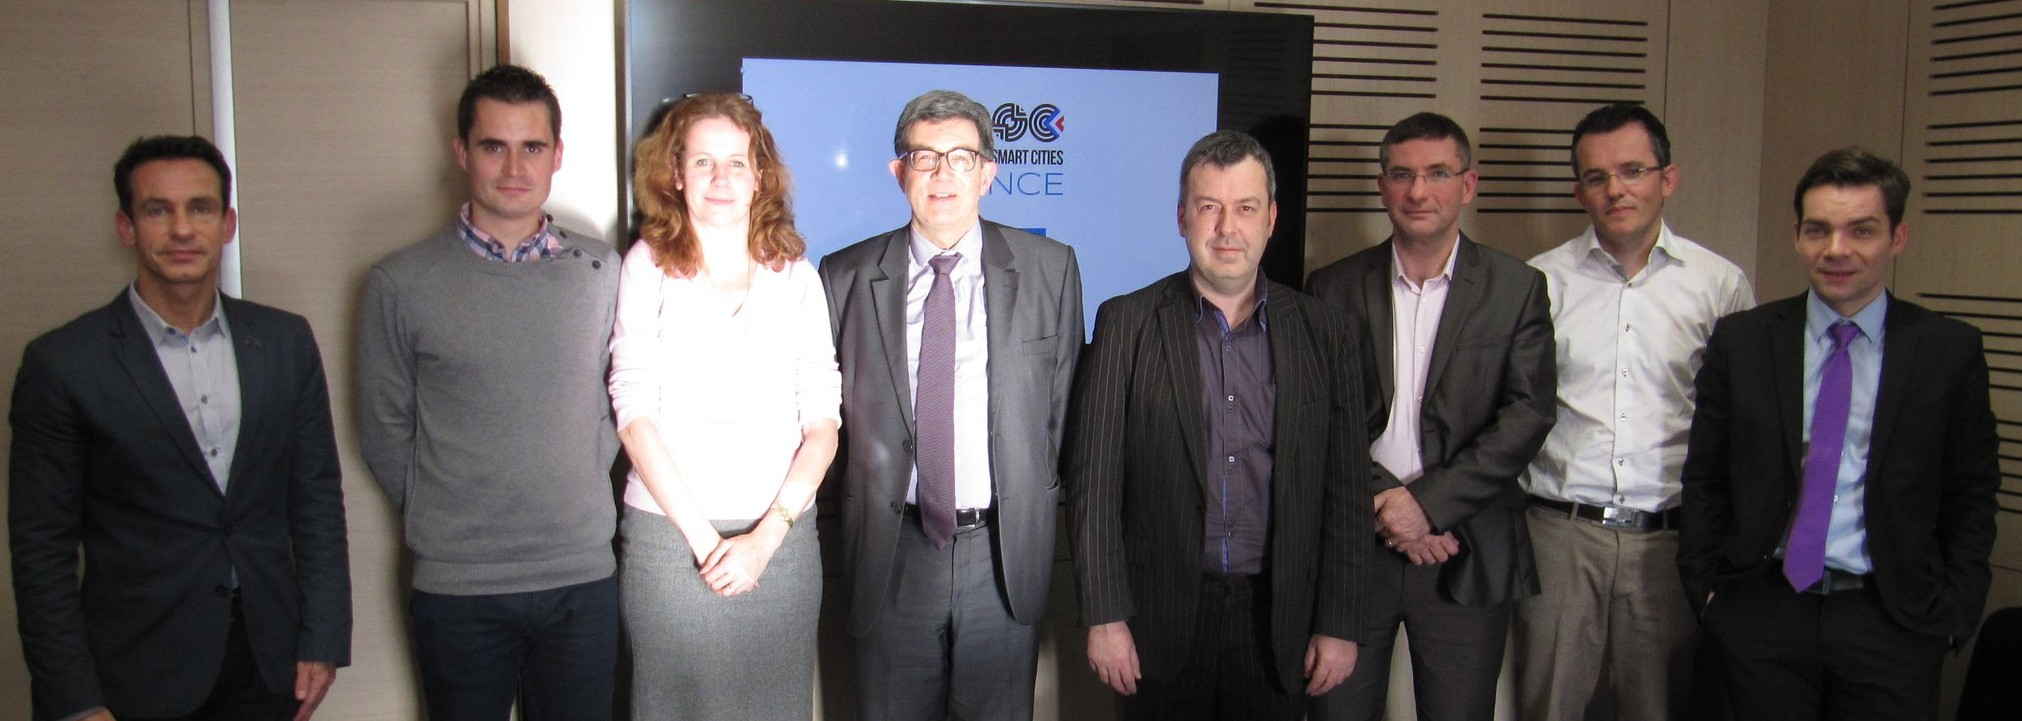 OASC France meets in Valenciennes